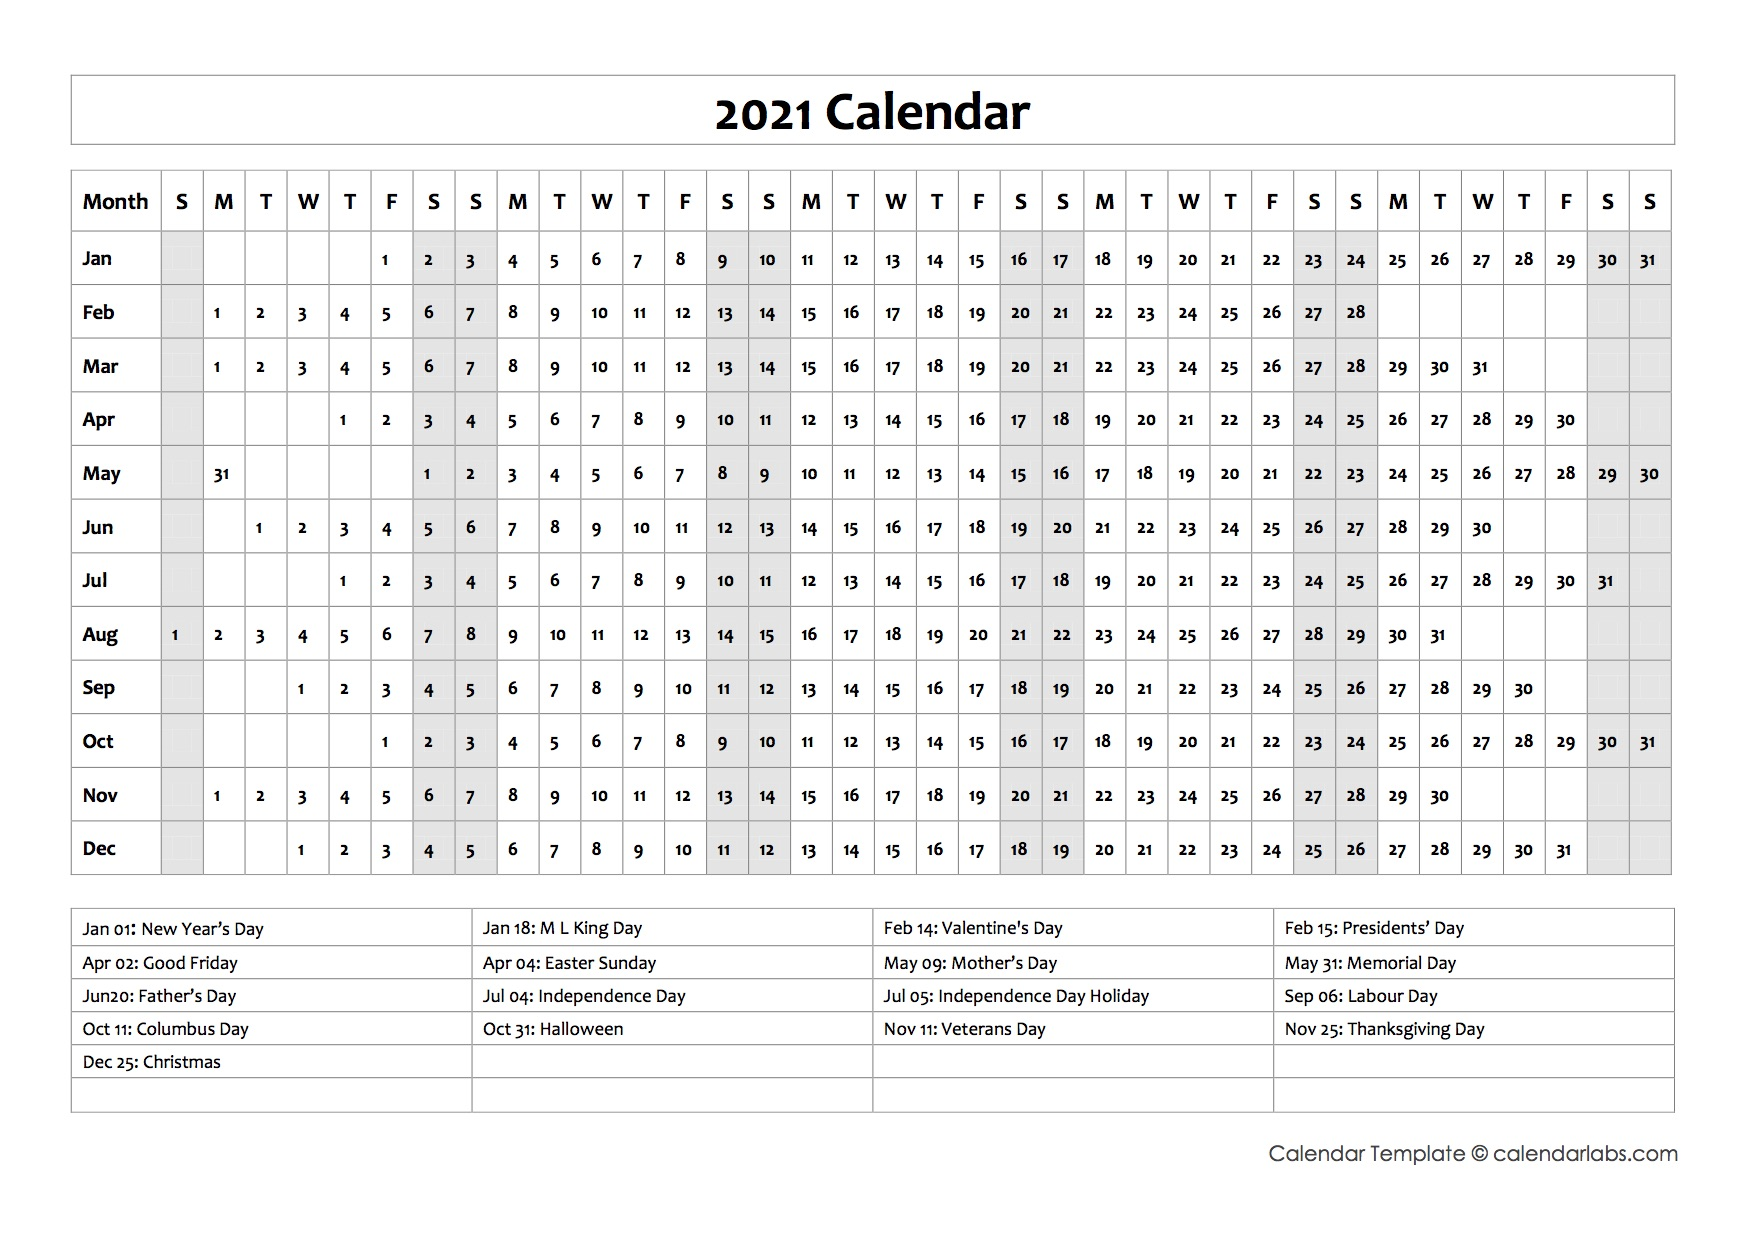 2021 Calendar Template Year at a Glance - Free Printable ...